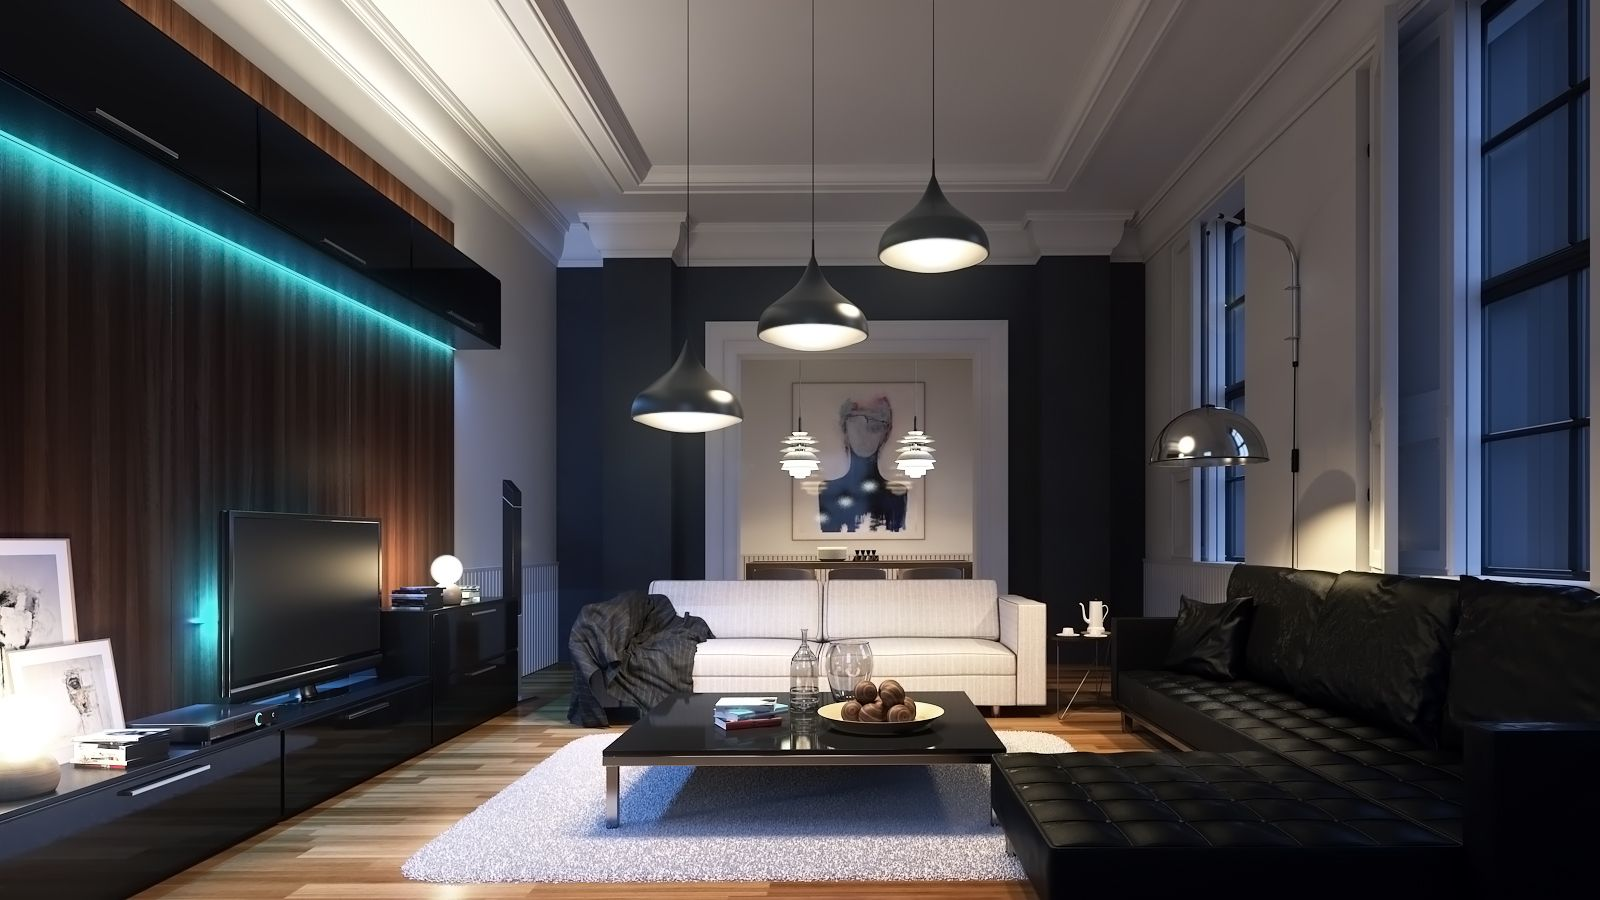 Vray 3ds Max Night Interior Making of Part 1 – Vray Lighting Aleso3d Just Premium - 3Ds Max Interior Tutorial Real Design Vray Render Photoshop YouTube